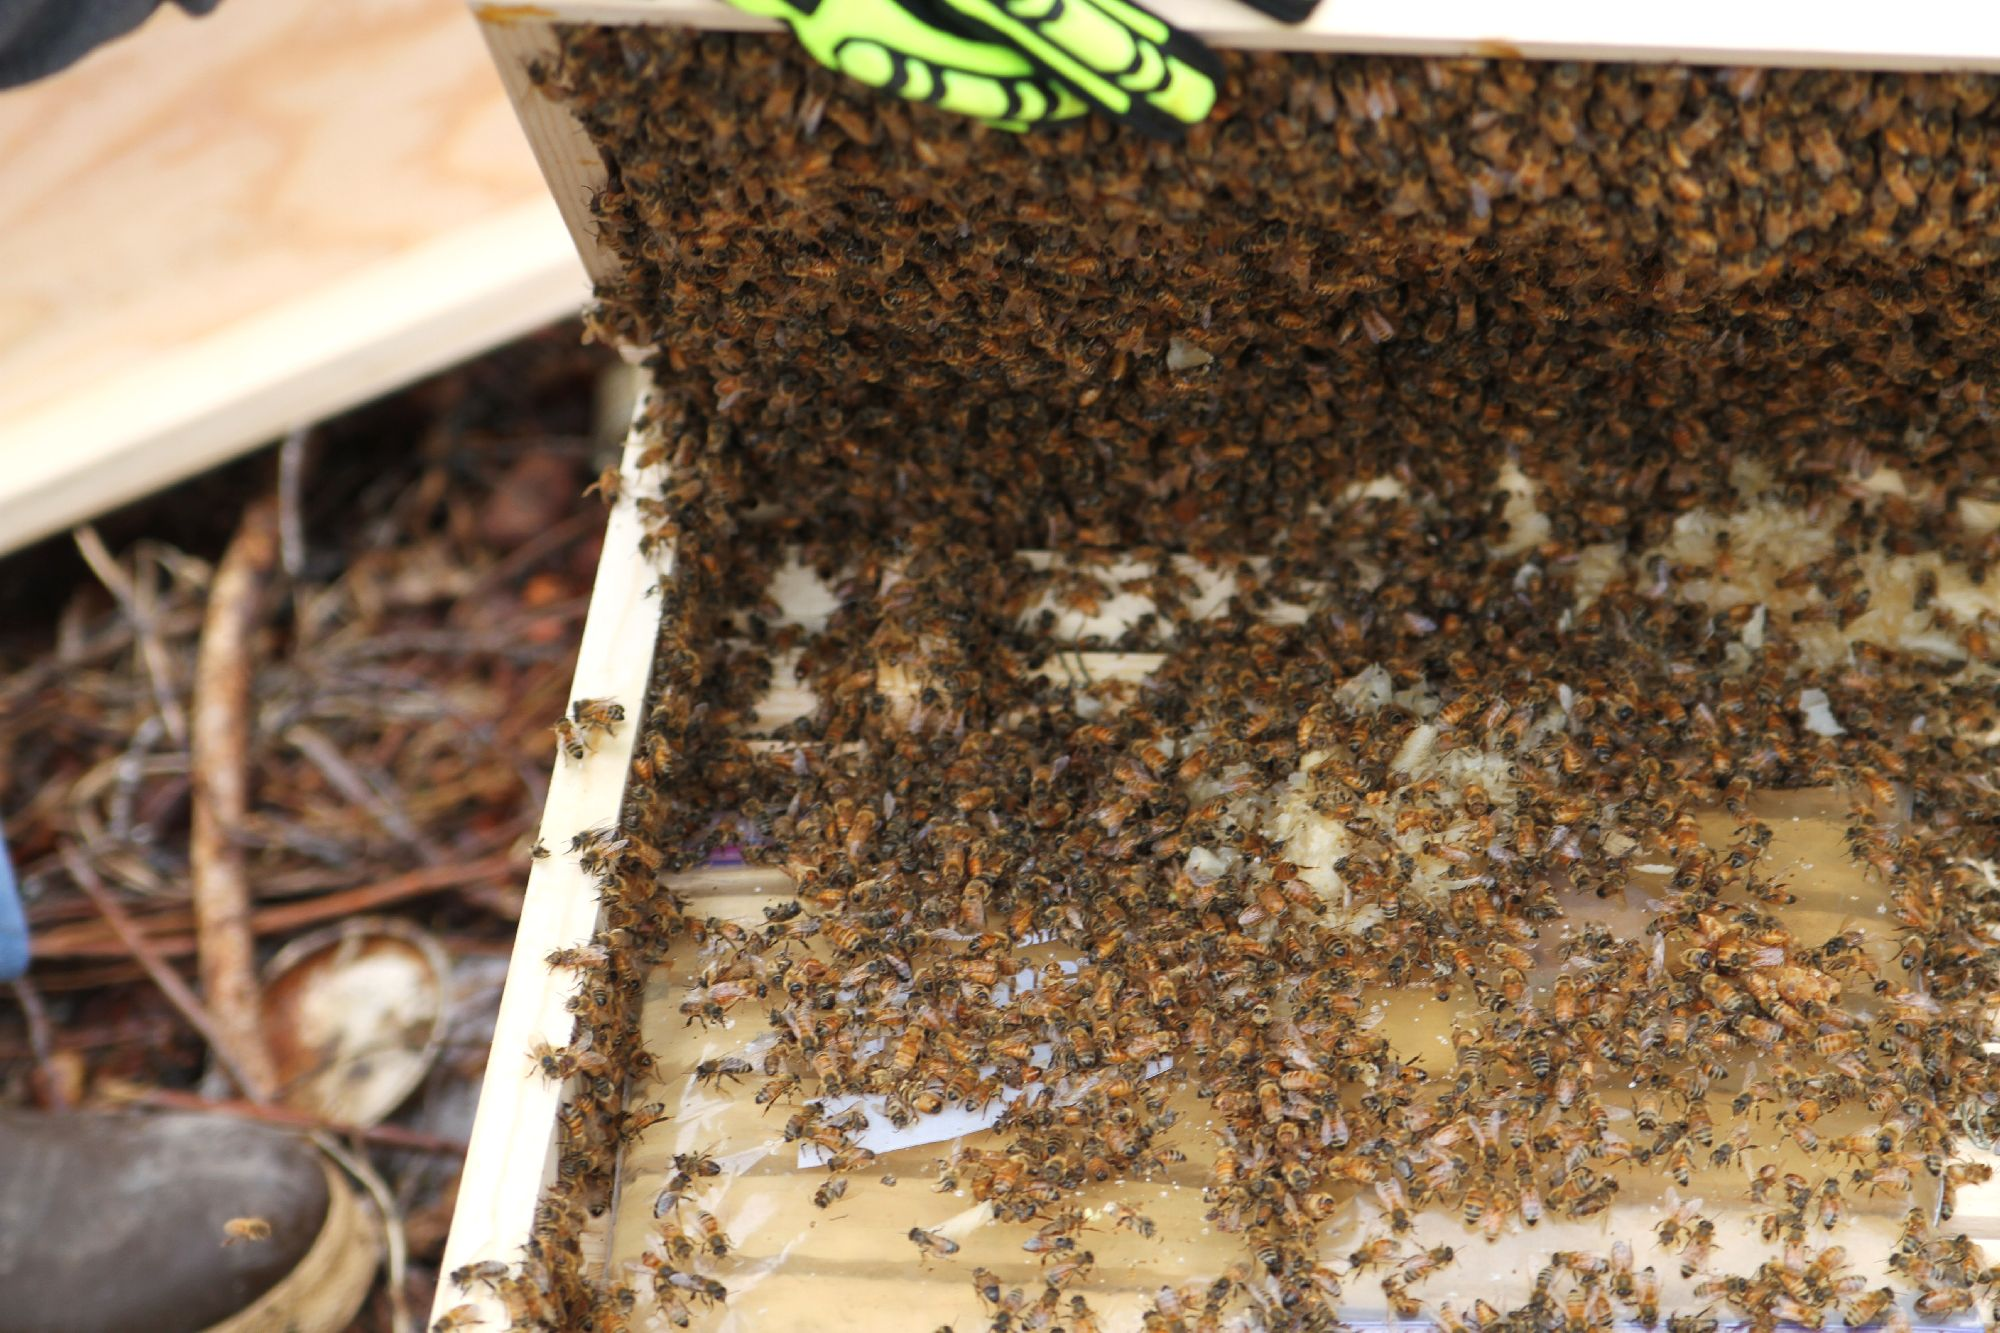 The queen is in that tiny box on the left corner, already engulfed in her bees...